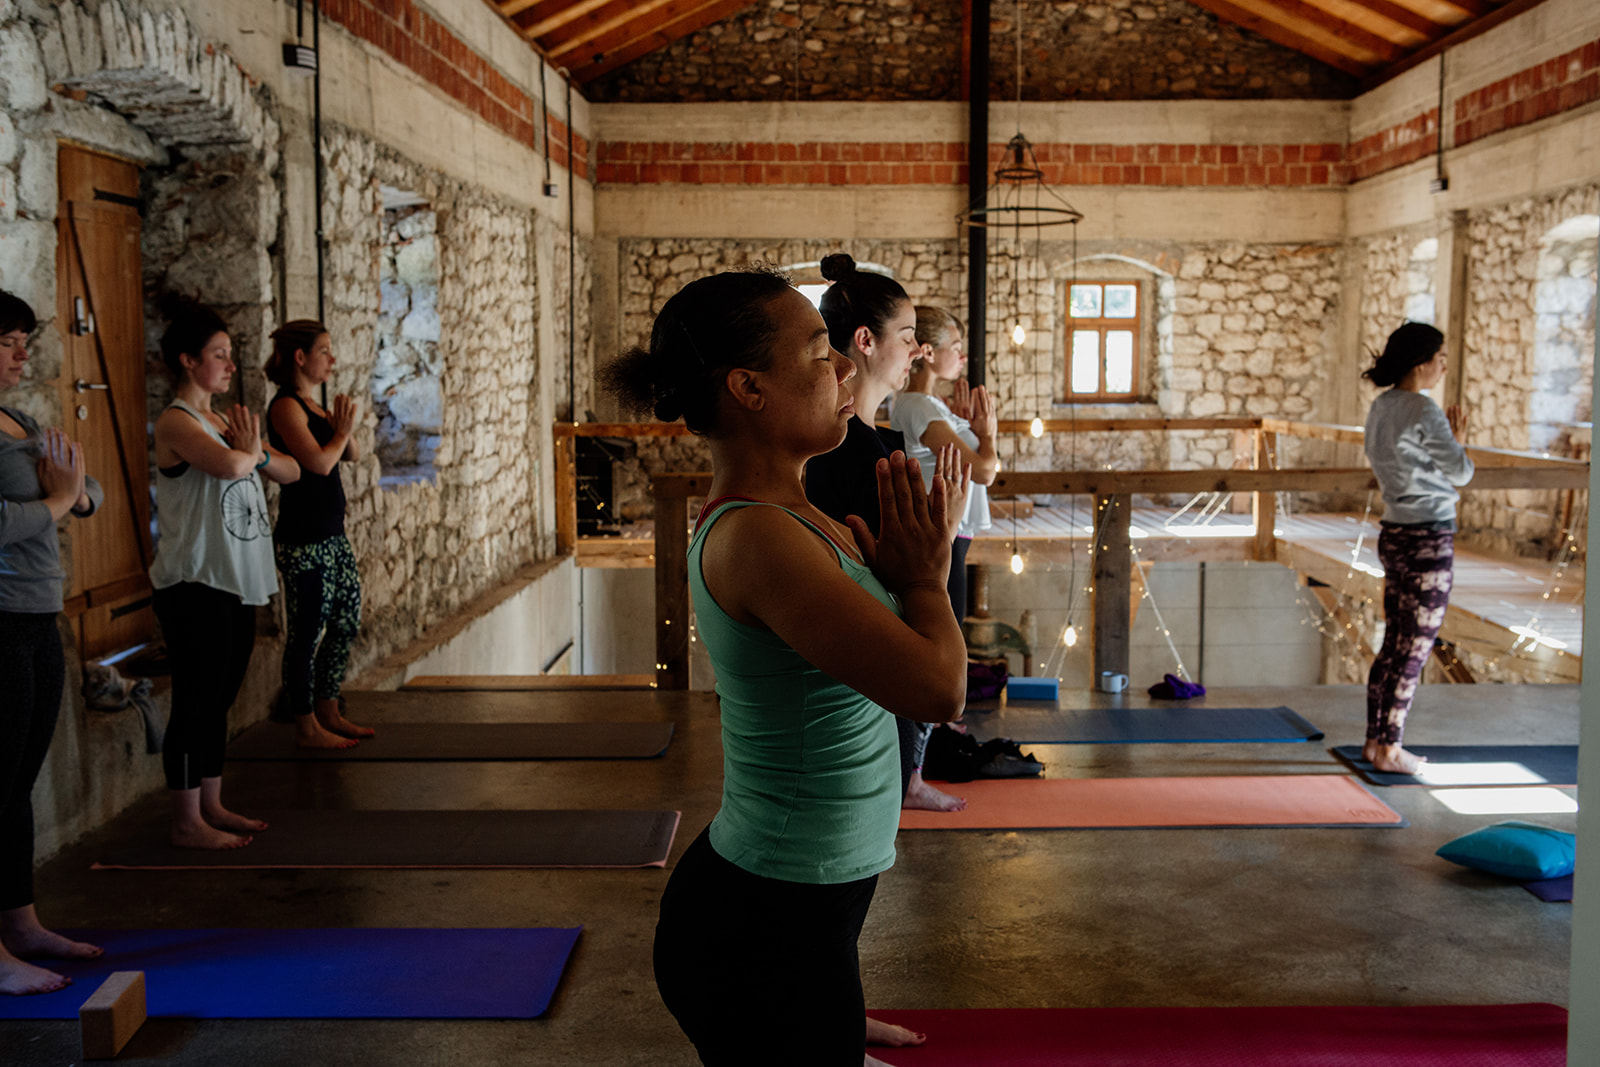 tadasana hands in prayer in yoga space - yoga holiday montenegro